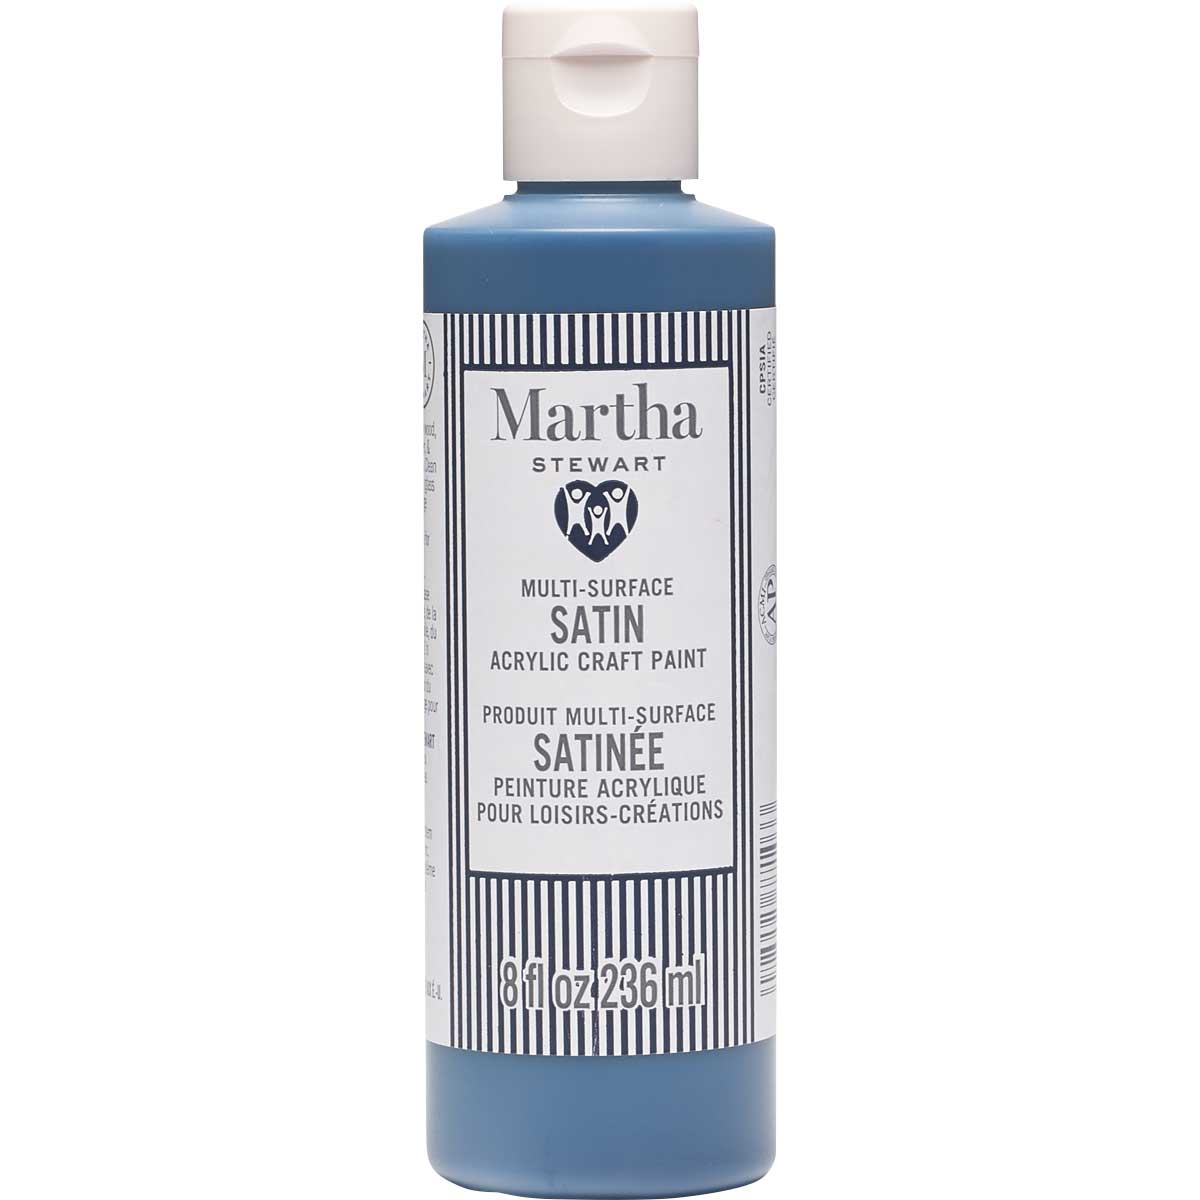 Martha Stewart ® Multi-Surface Satin Acrylic Craft Paint CPSIA - Deep Sea Blue, 8 oz. - 77103